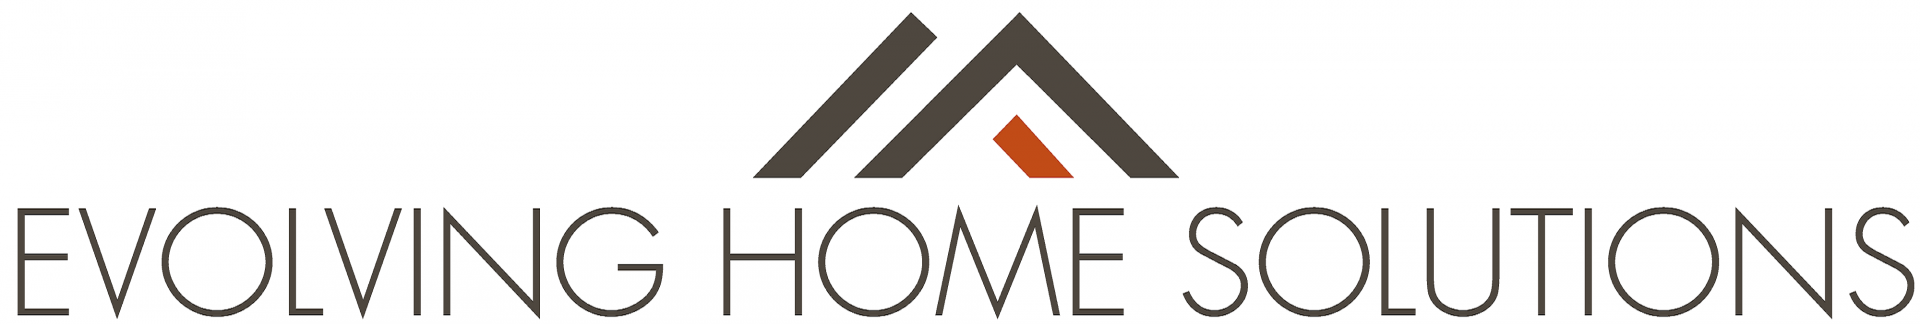 Evolving Home Solutions  logo